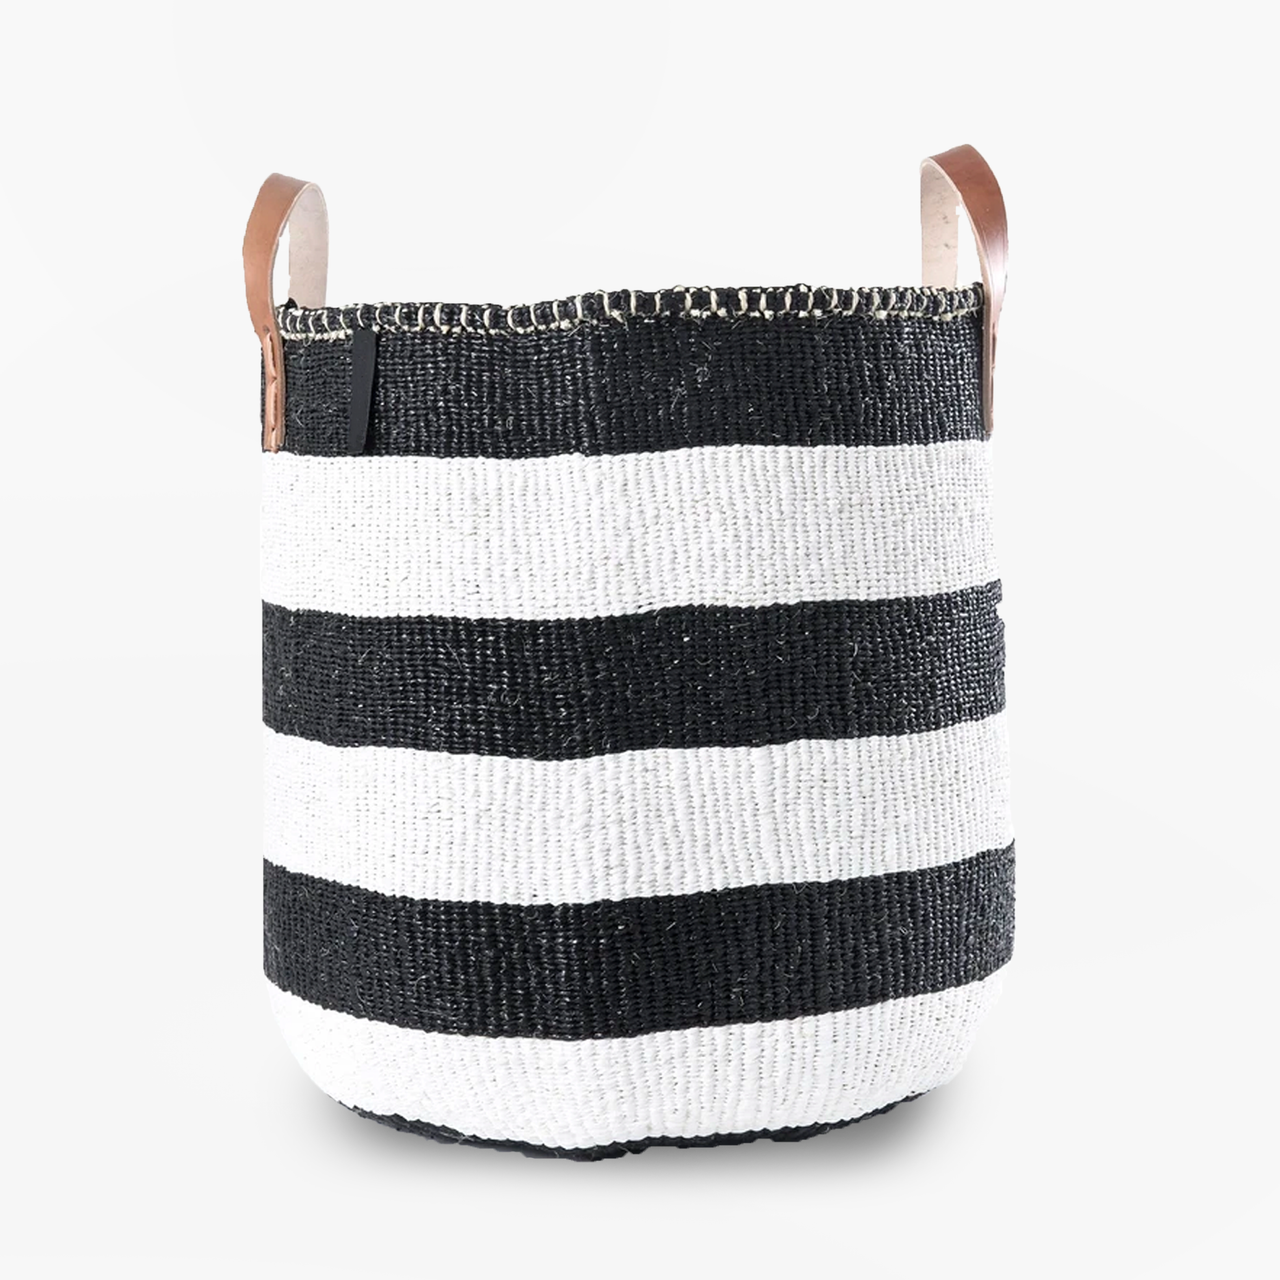 Mono Basket - Adia Black with Leather Handles